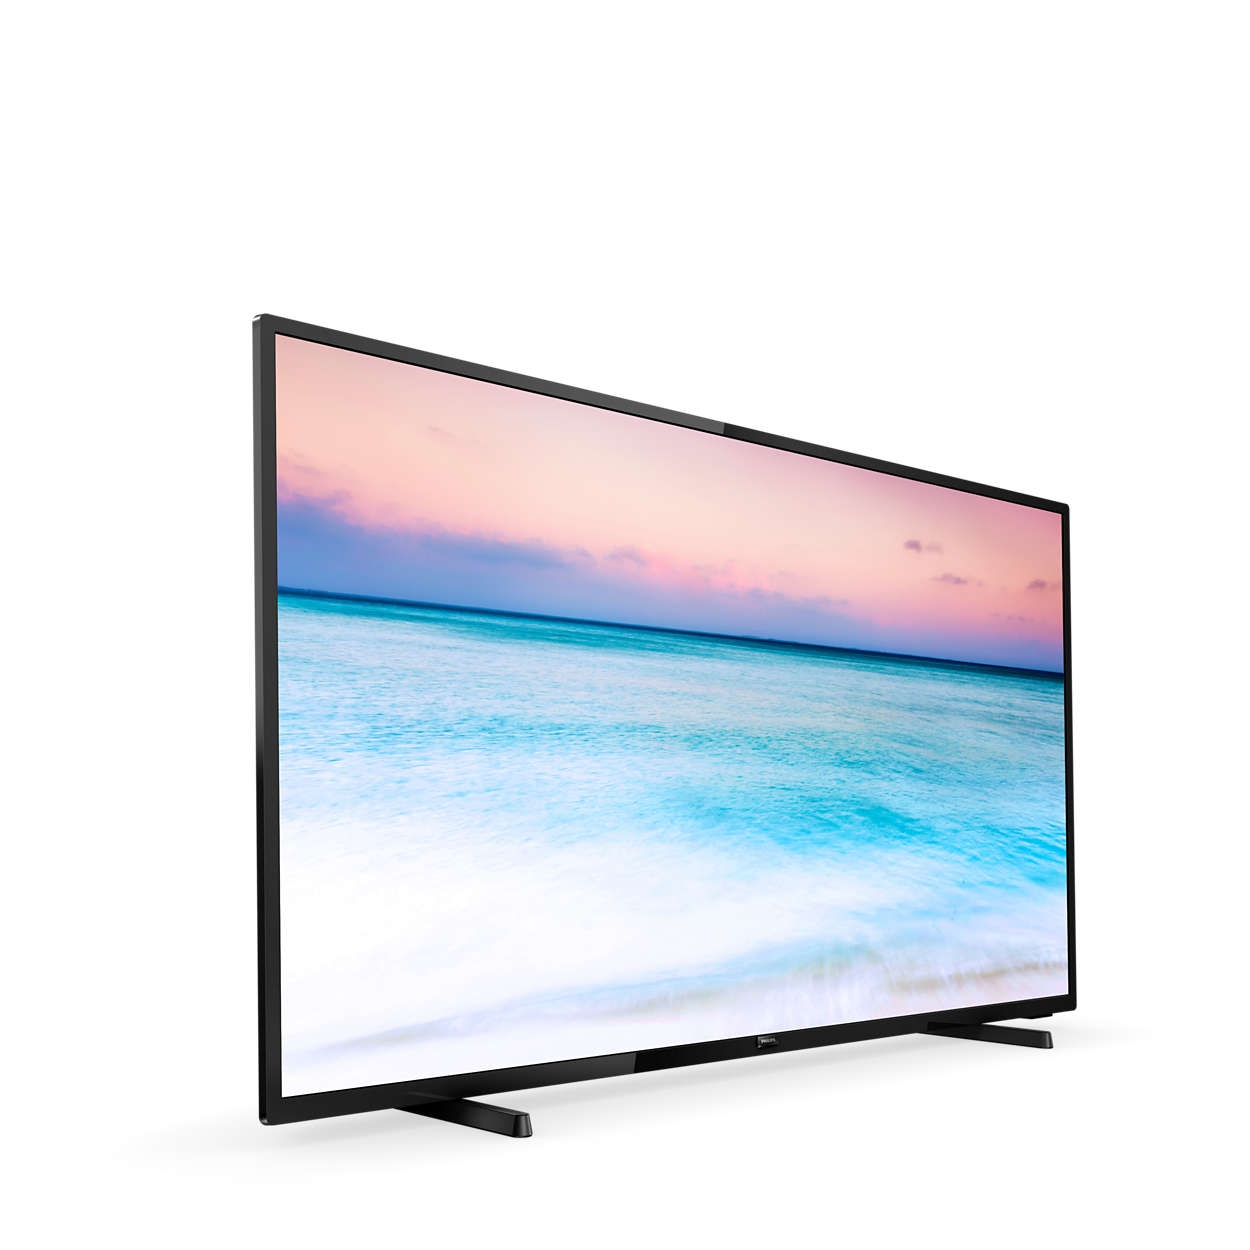 Фото - ЖК Телевизор Ultra HD Philips 58PUS6504 58 дюймов телевизор philips 43pus7505 60 43 ultra hd 4k